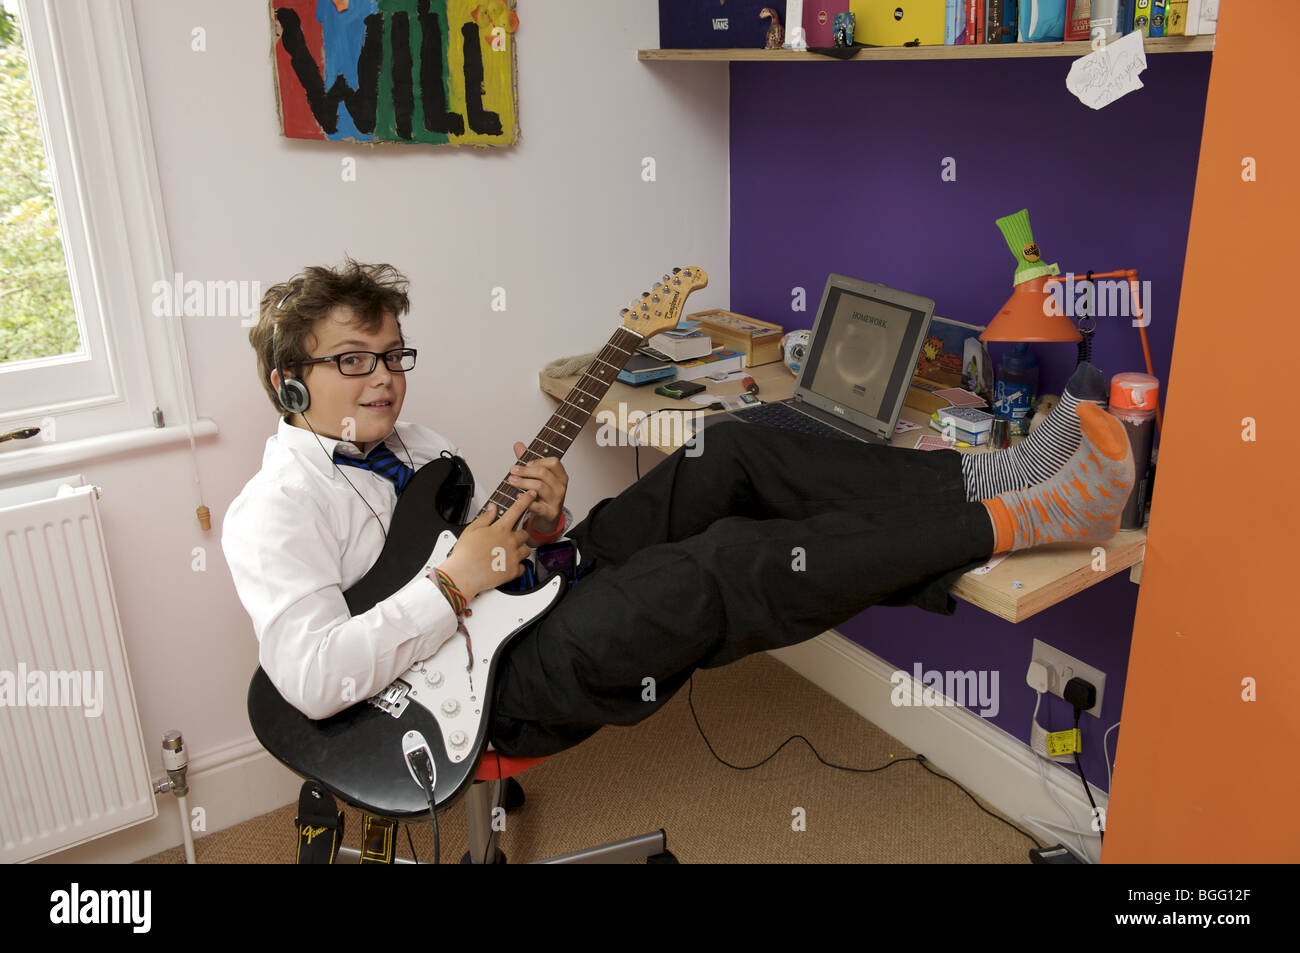 14 Year Old Boy Cool High Resolution Stock Photography And Images Alamy